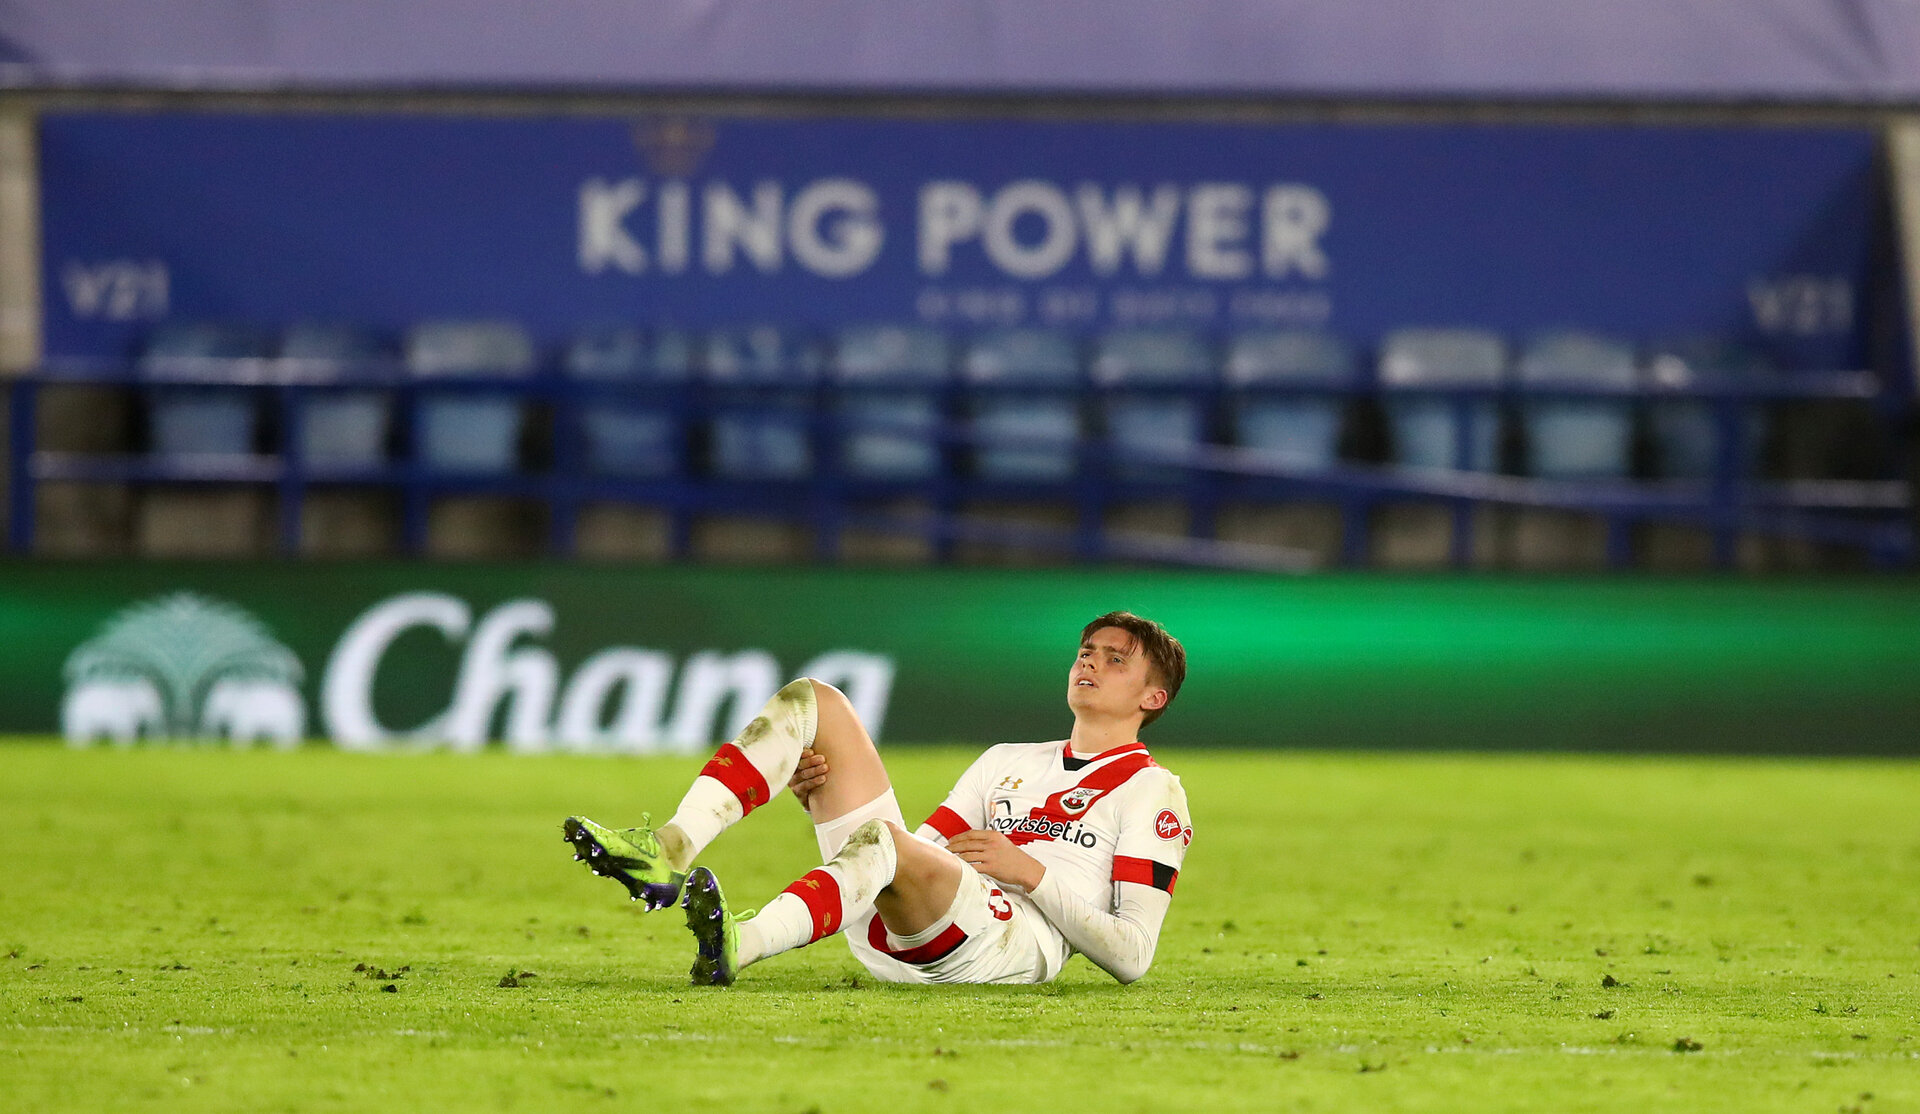 LEICESTER, ENGLAND - JANUARY 16: Will Smallbone of Southampton picks up an injury during the Premier League match between Leicester City and Southampton at The King Power Stadium on January 16, 2021 in Leicester, England. Sporting stadiums around England remain under strict restrictions due to the Coronavirus Pandemic as Government social distancing laws prohibit fans inside venues resulting in games being played behind closed doors. (Photo by Matt Watson/Southampton FC via Getty Images)